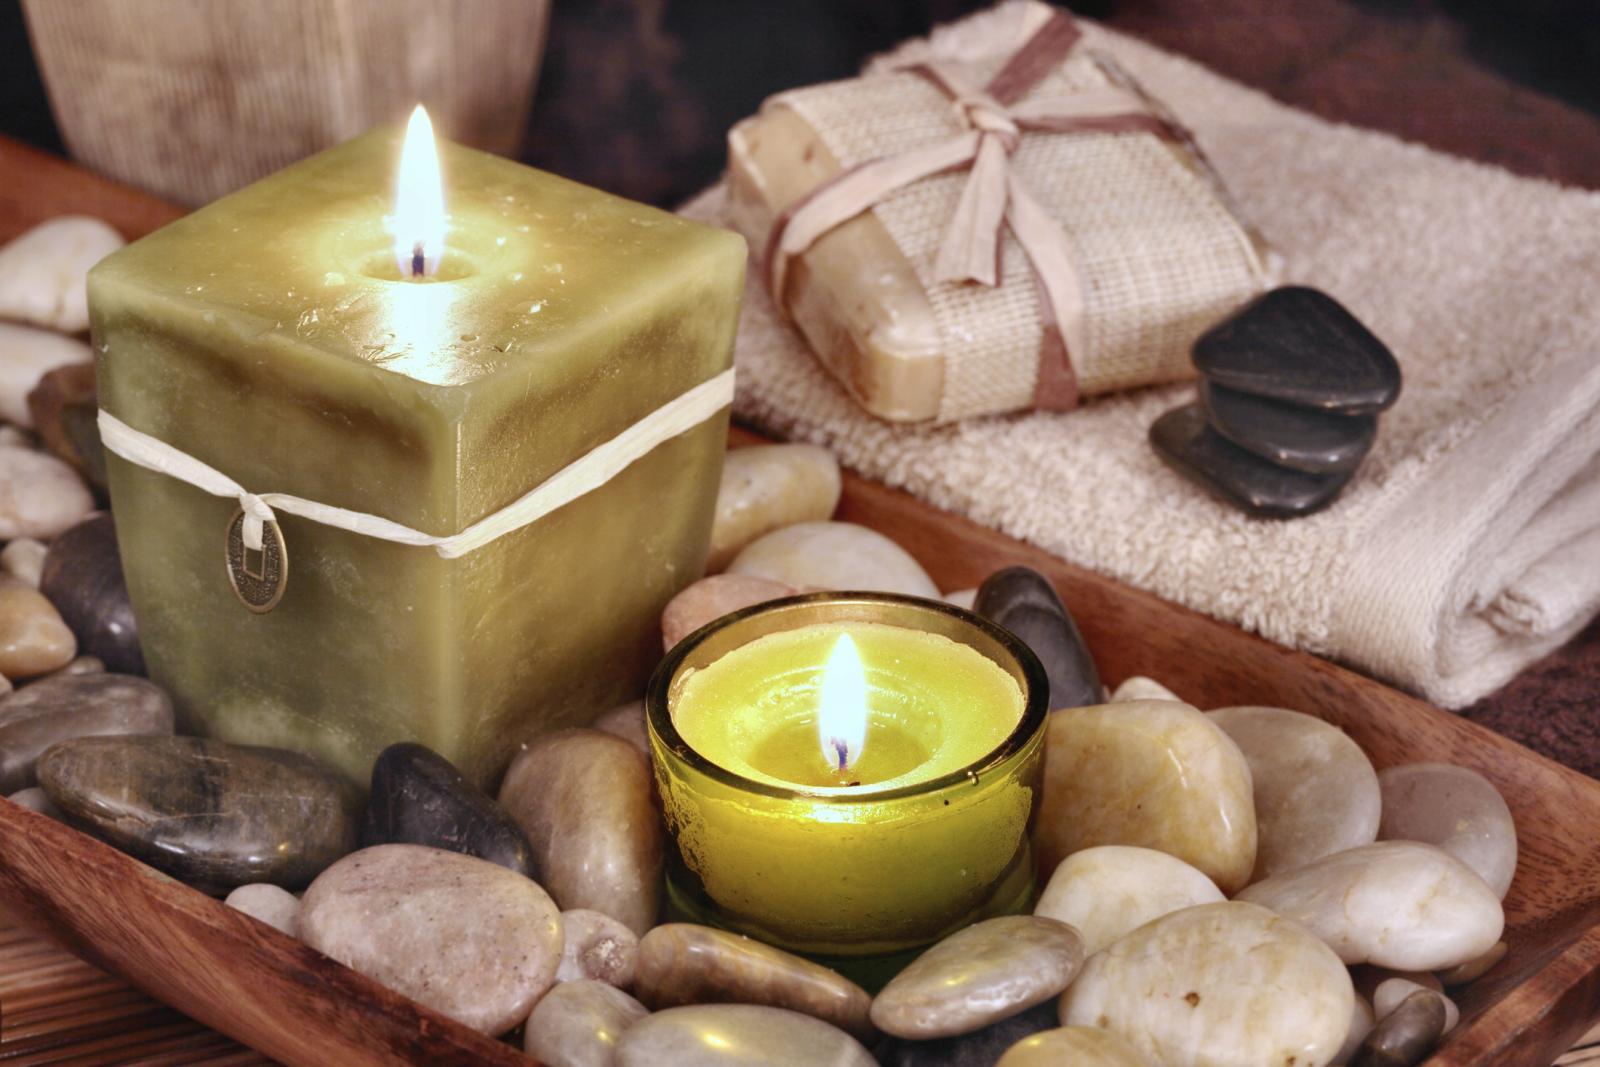 Feng Shui Tranquility with stones, candles, soap in neutral tones